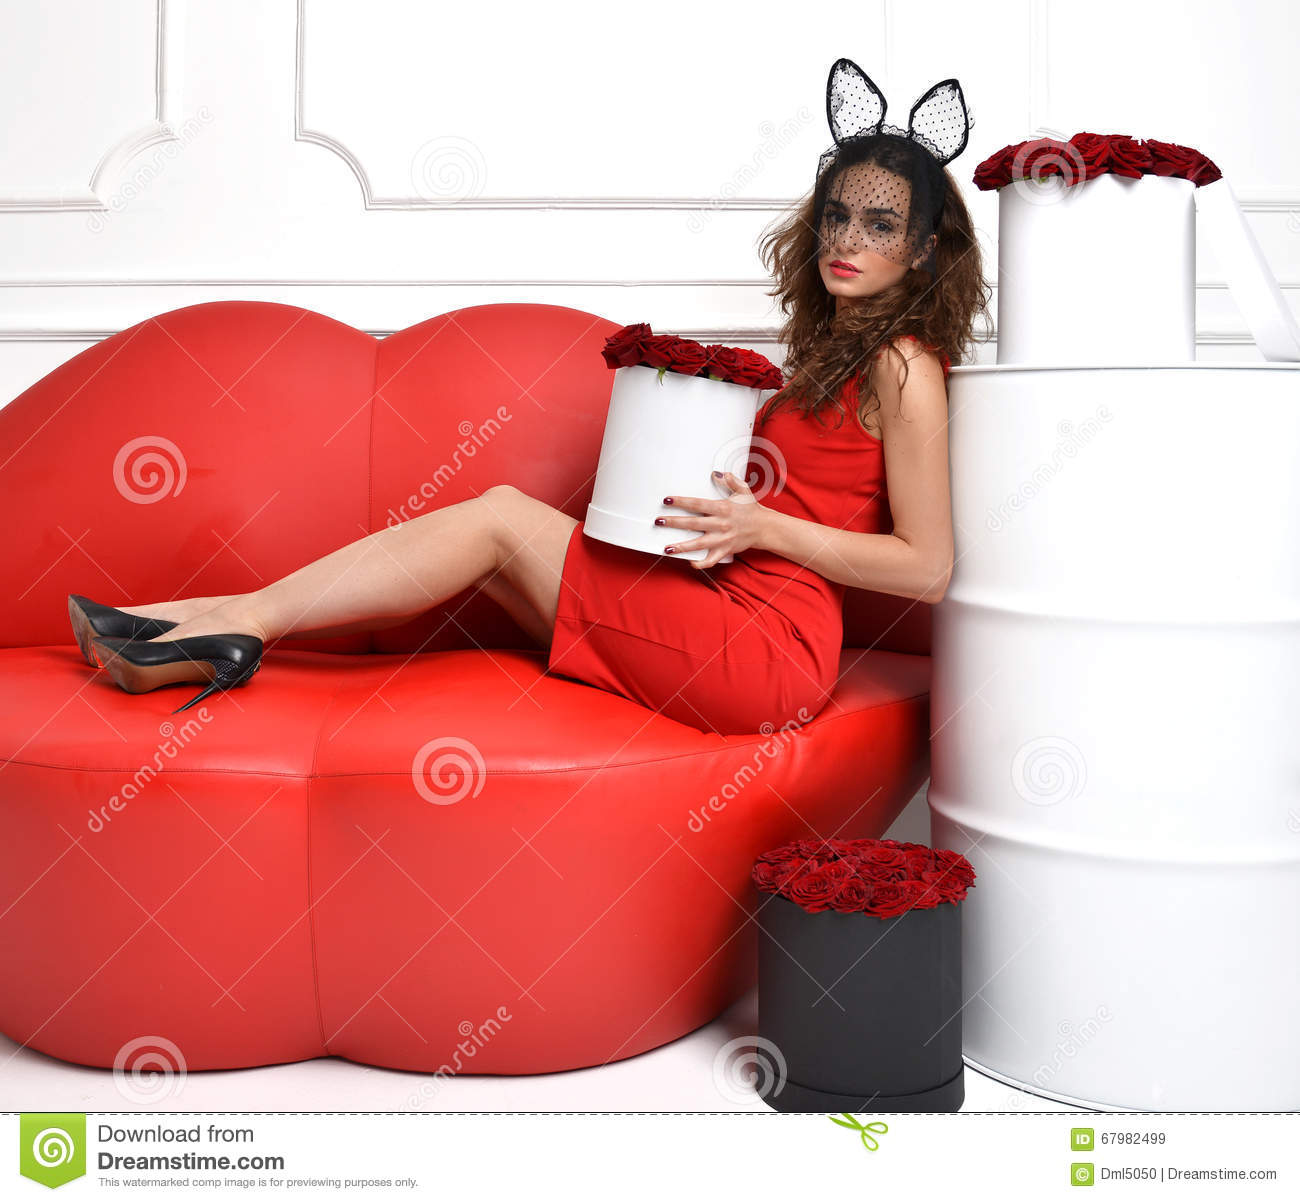 Woman Lying On Red Lips Sofa Couch And Red Dress With